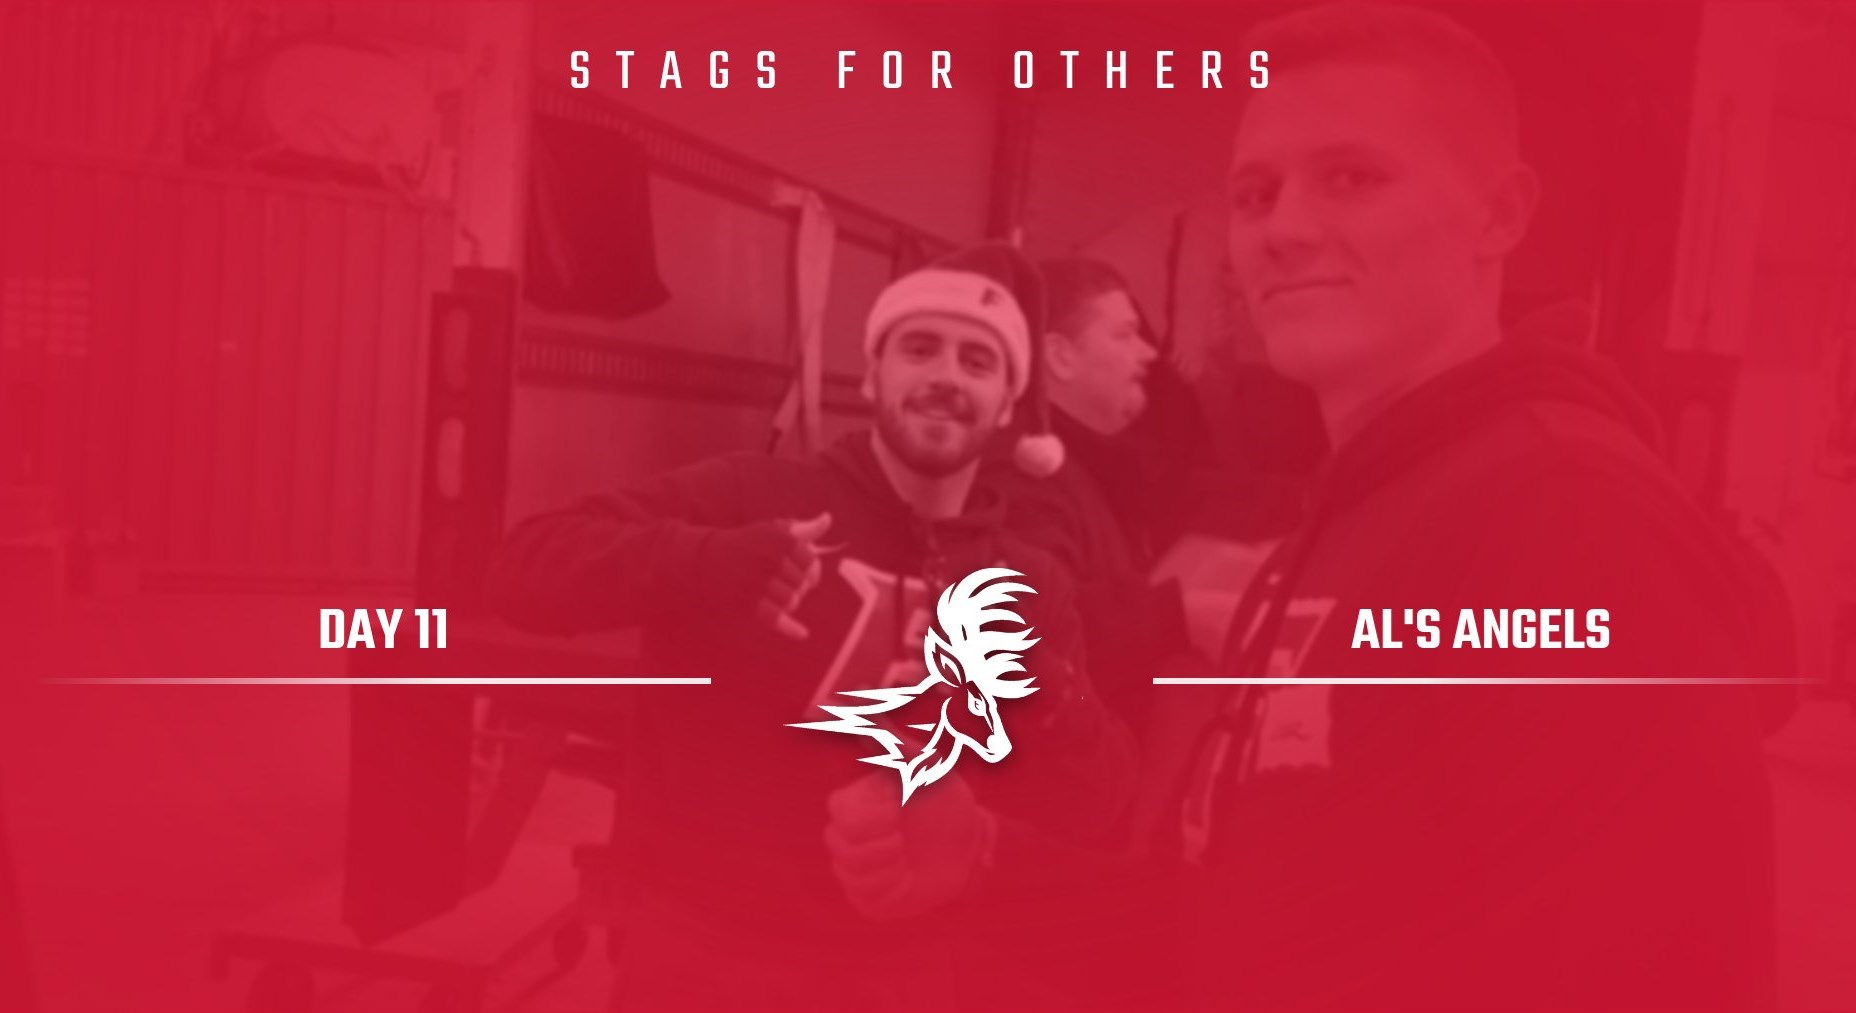 Stags for Others: Al's Angels